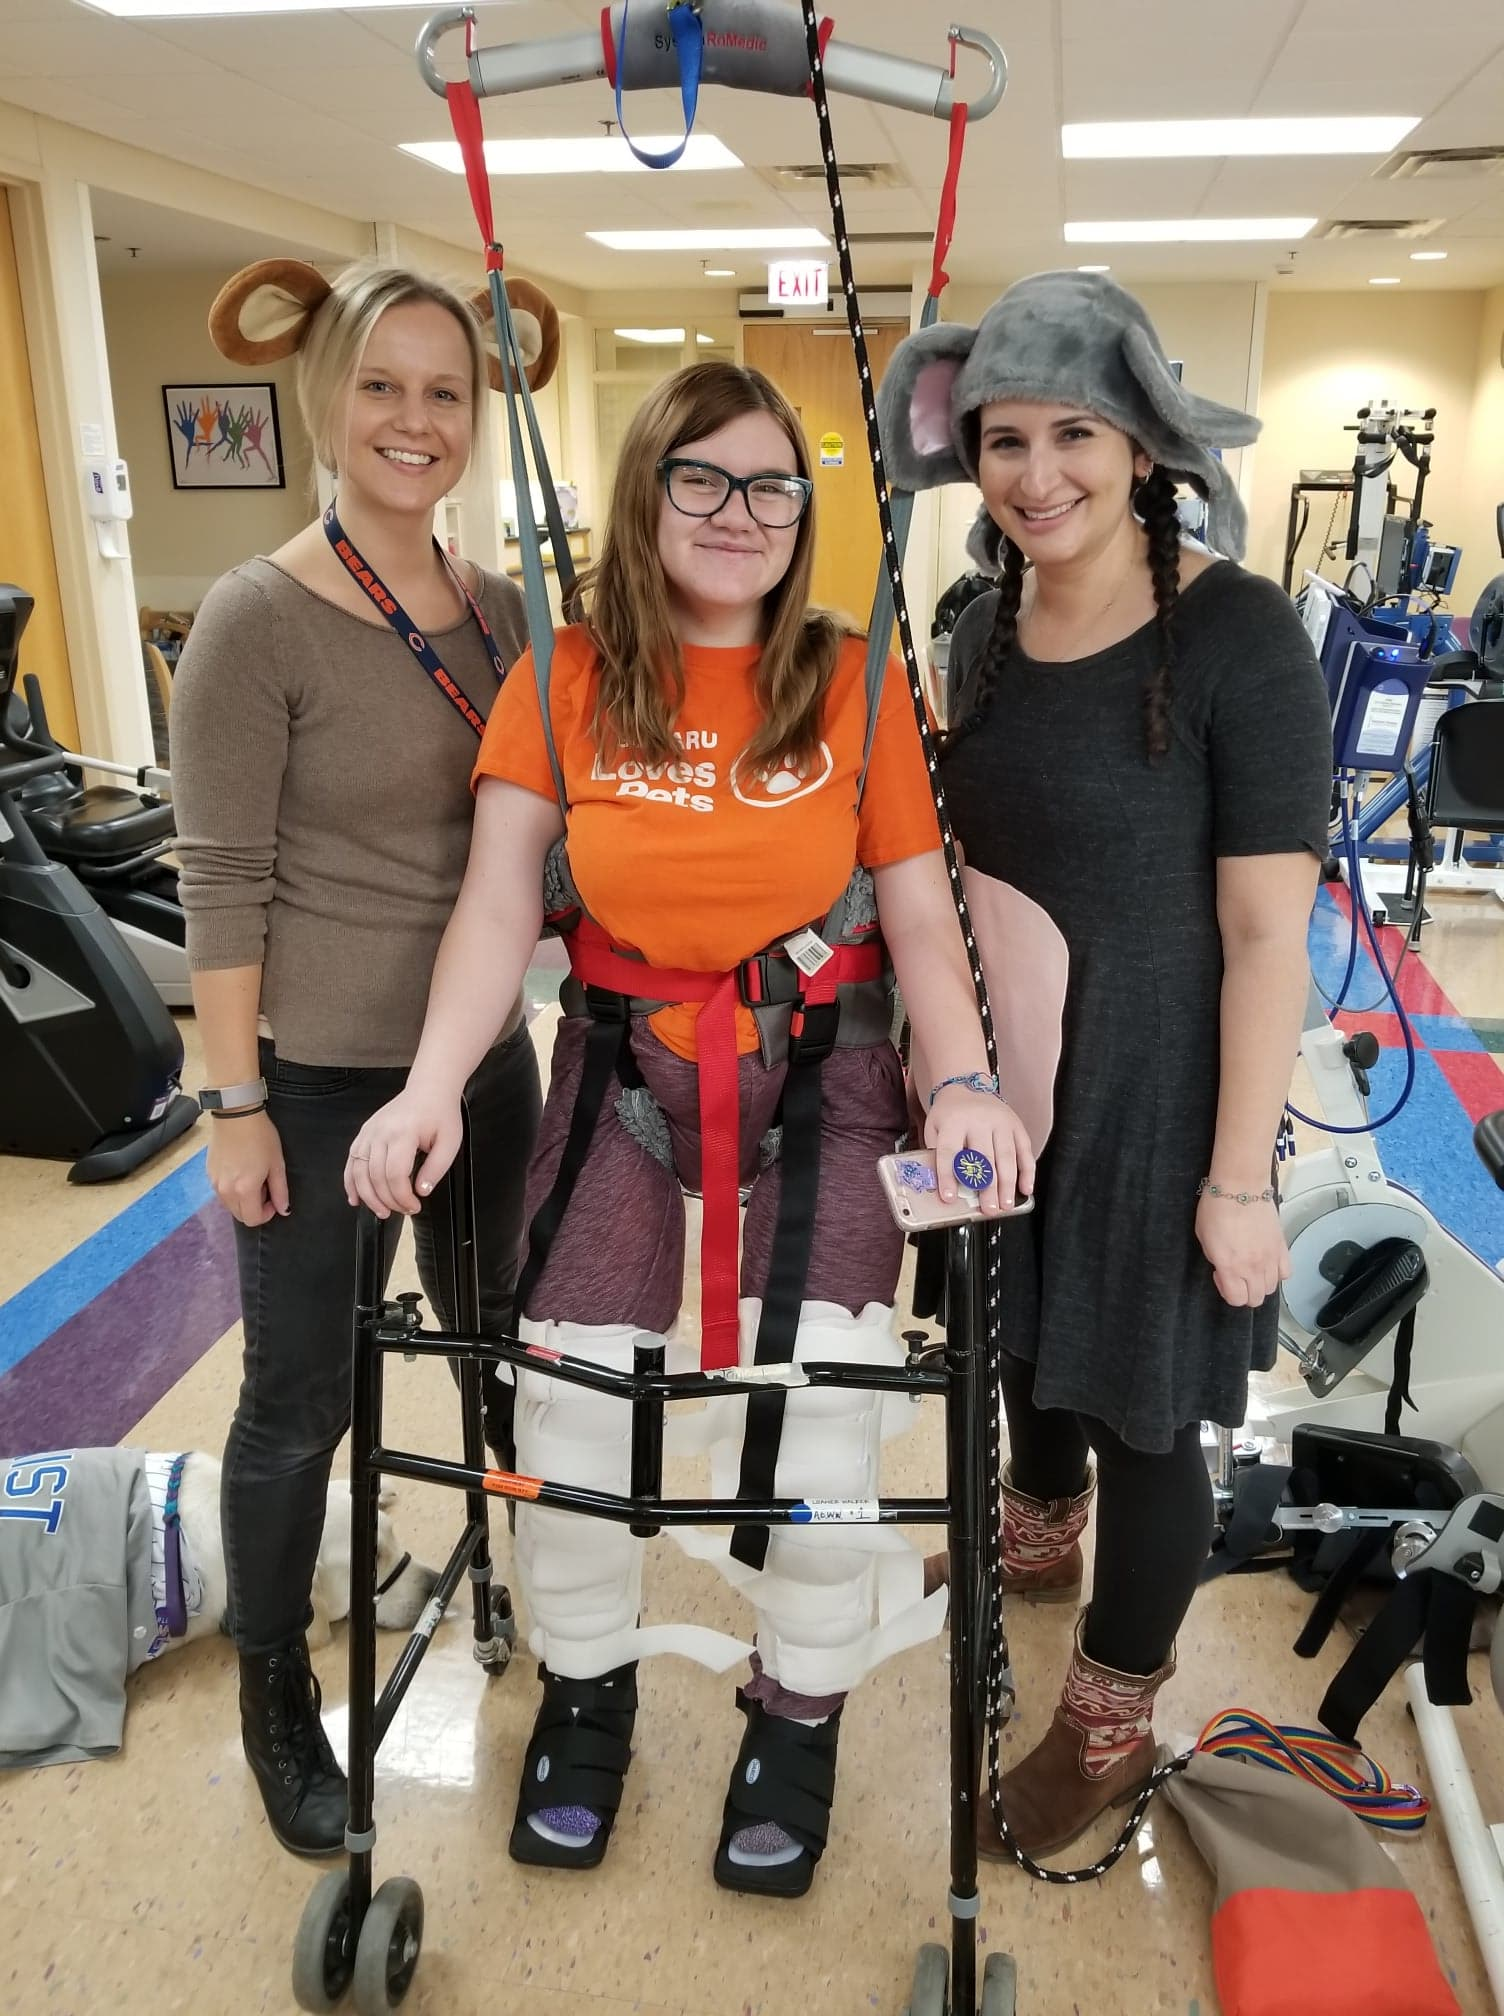 Donate - Taylor goes to X hours of PT and training which costs $X per hour